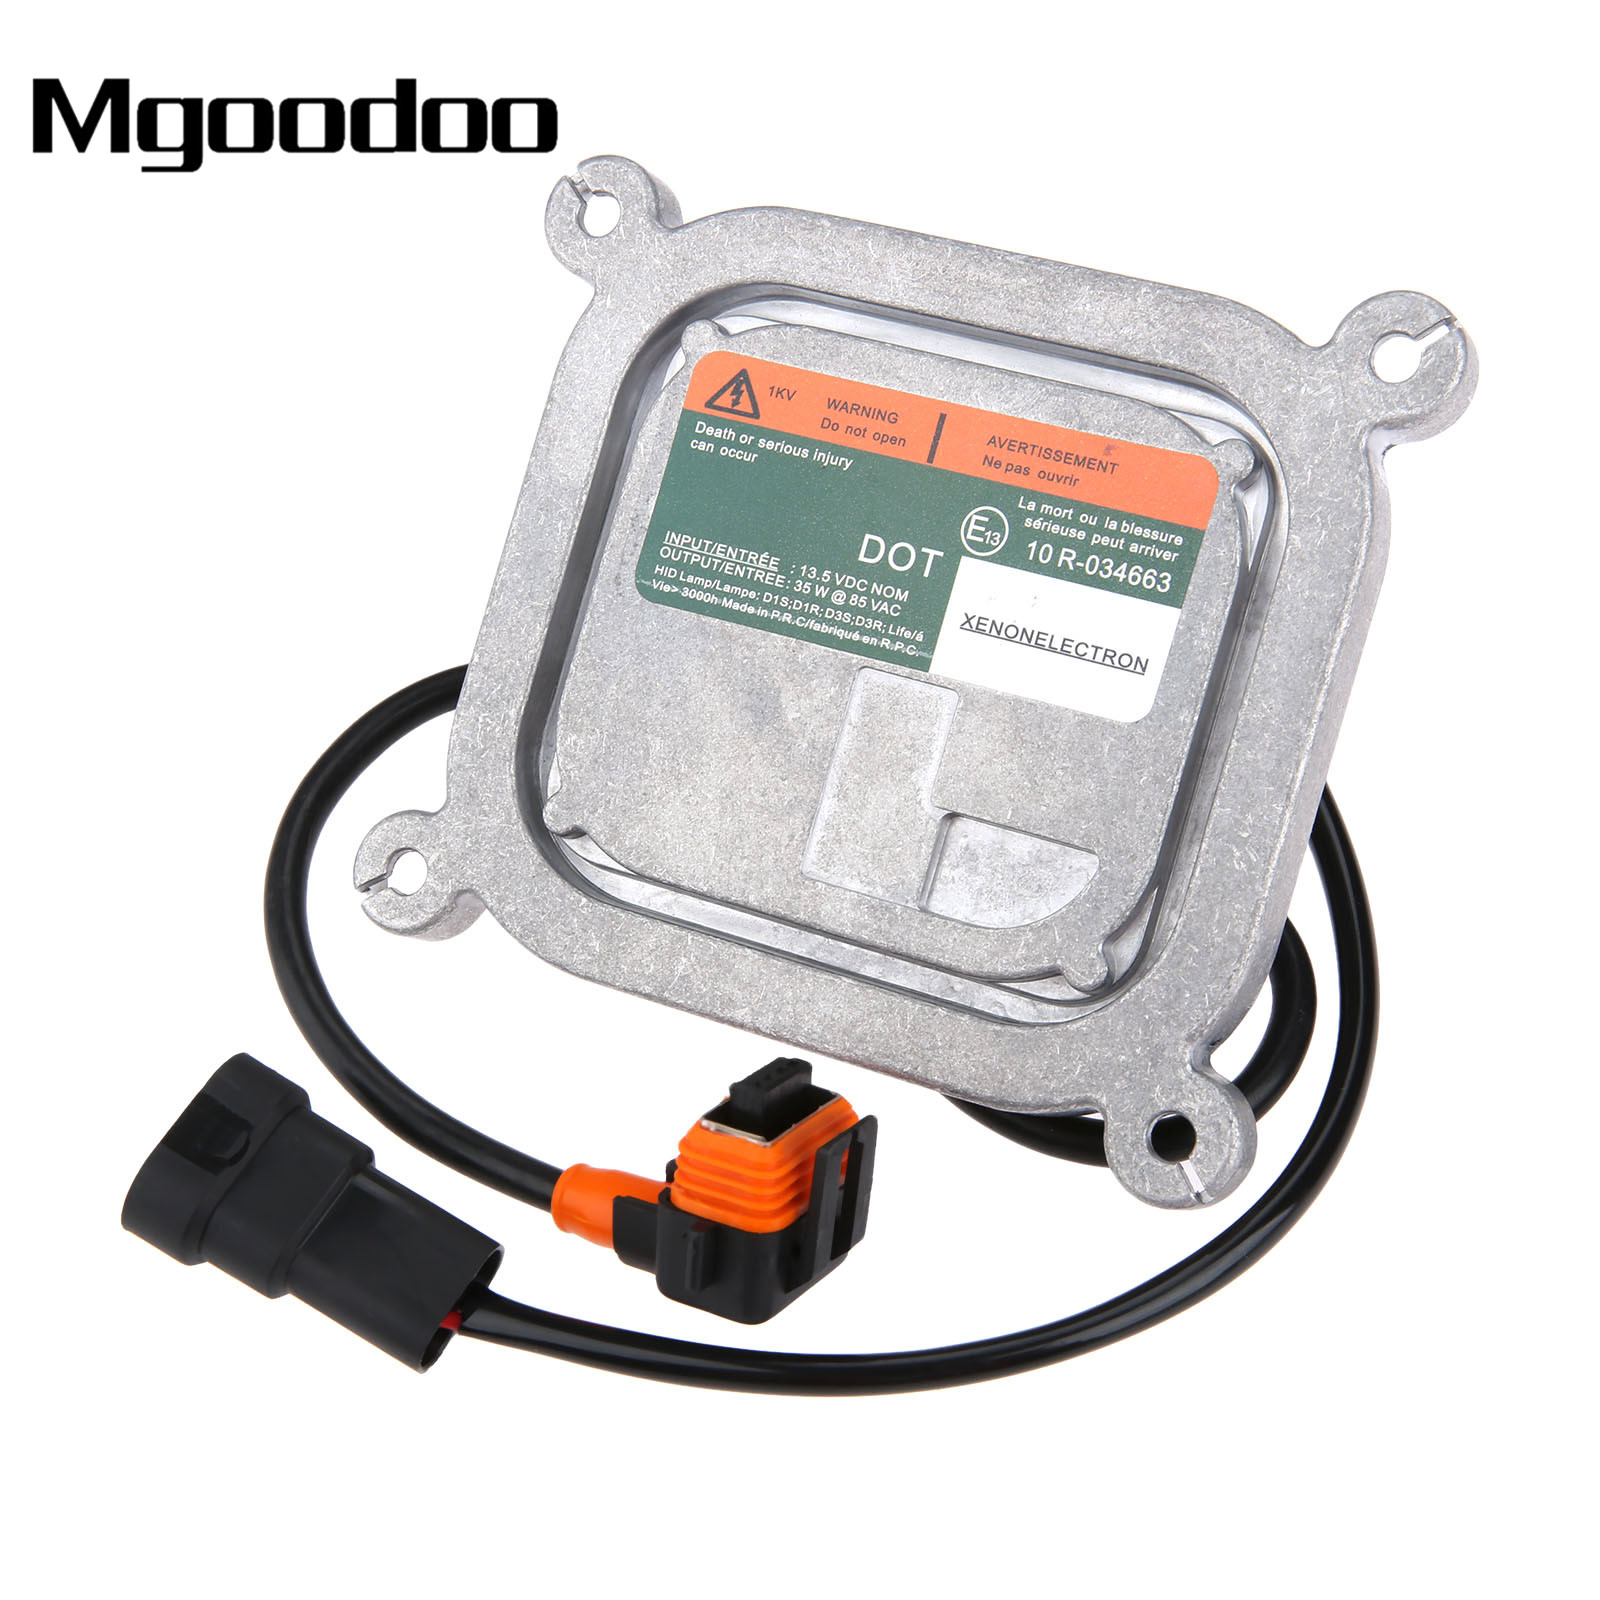 Mgoodoo Xenon HID Headlight Ballast Harness Wiring 10R-034663 AA3857300DG Ww/ Cables For Bulbs D1S/R D3S/R For Ford LincolnMgoodoo Xenon HID Headlight Ballast Harness Wiring 10R-034663 AA3857300DG Ww/ Cables For Bulbs D1S/R D3S/R For Ford Lincoln